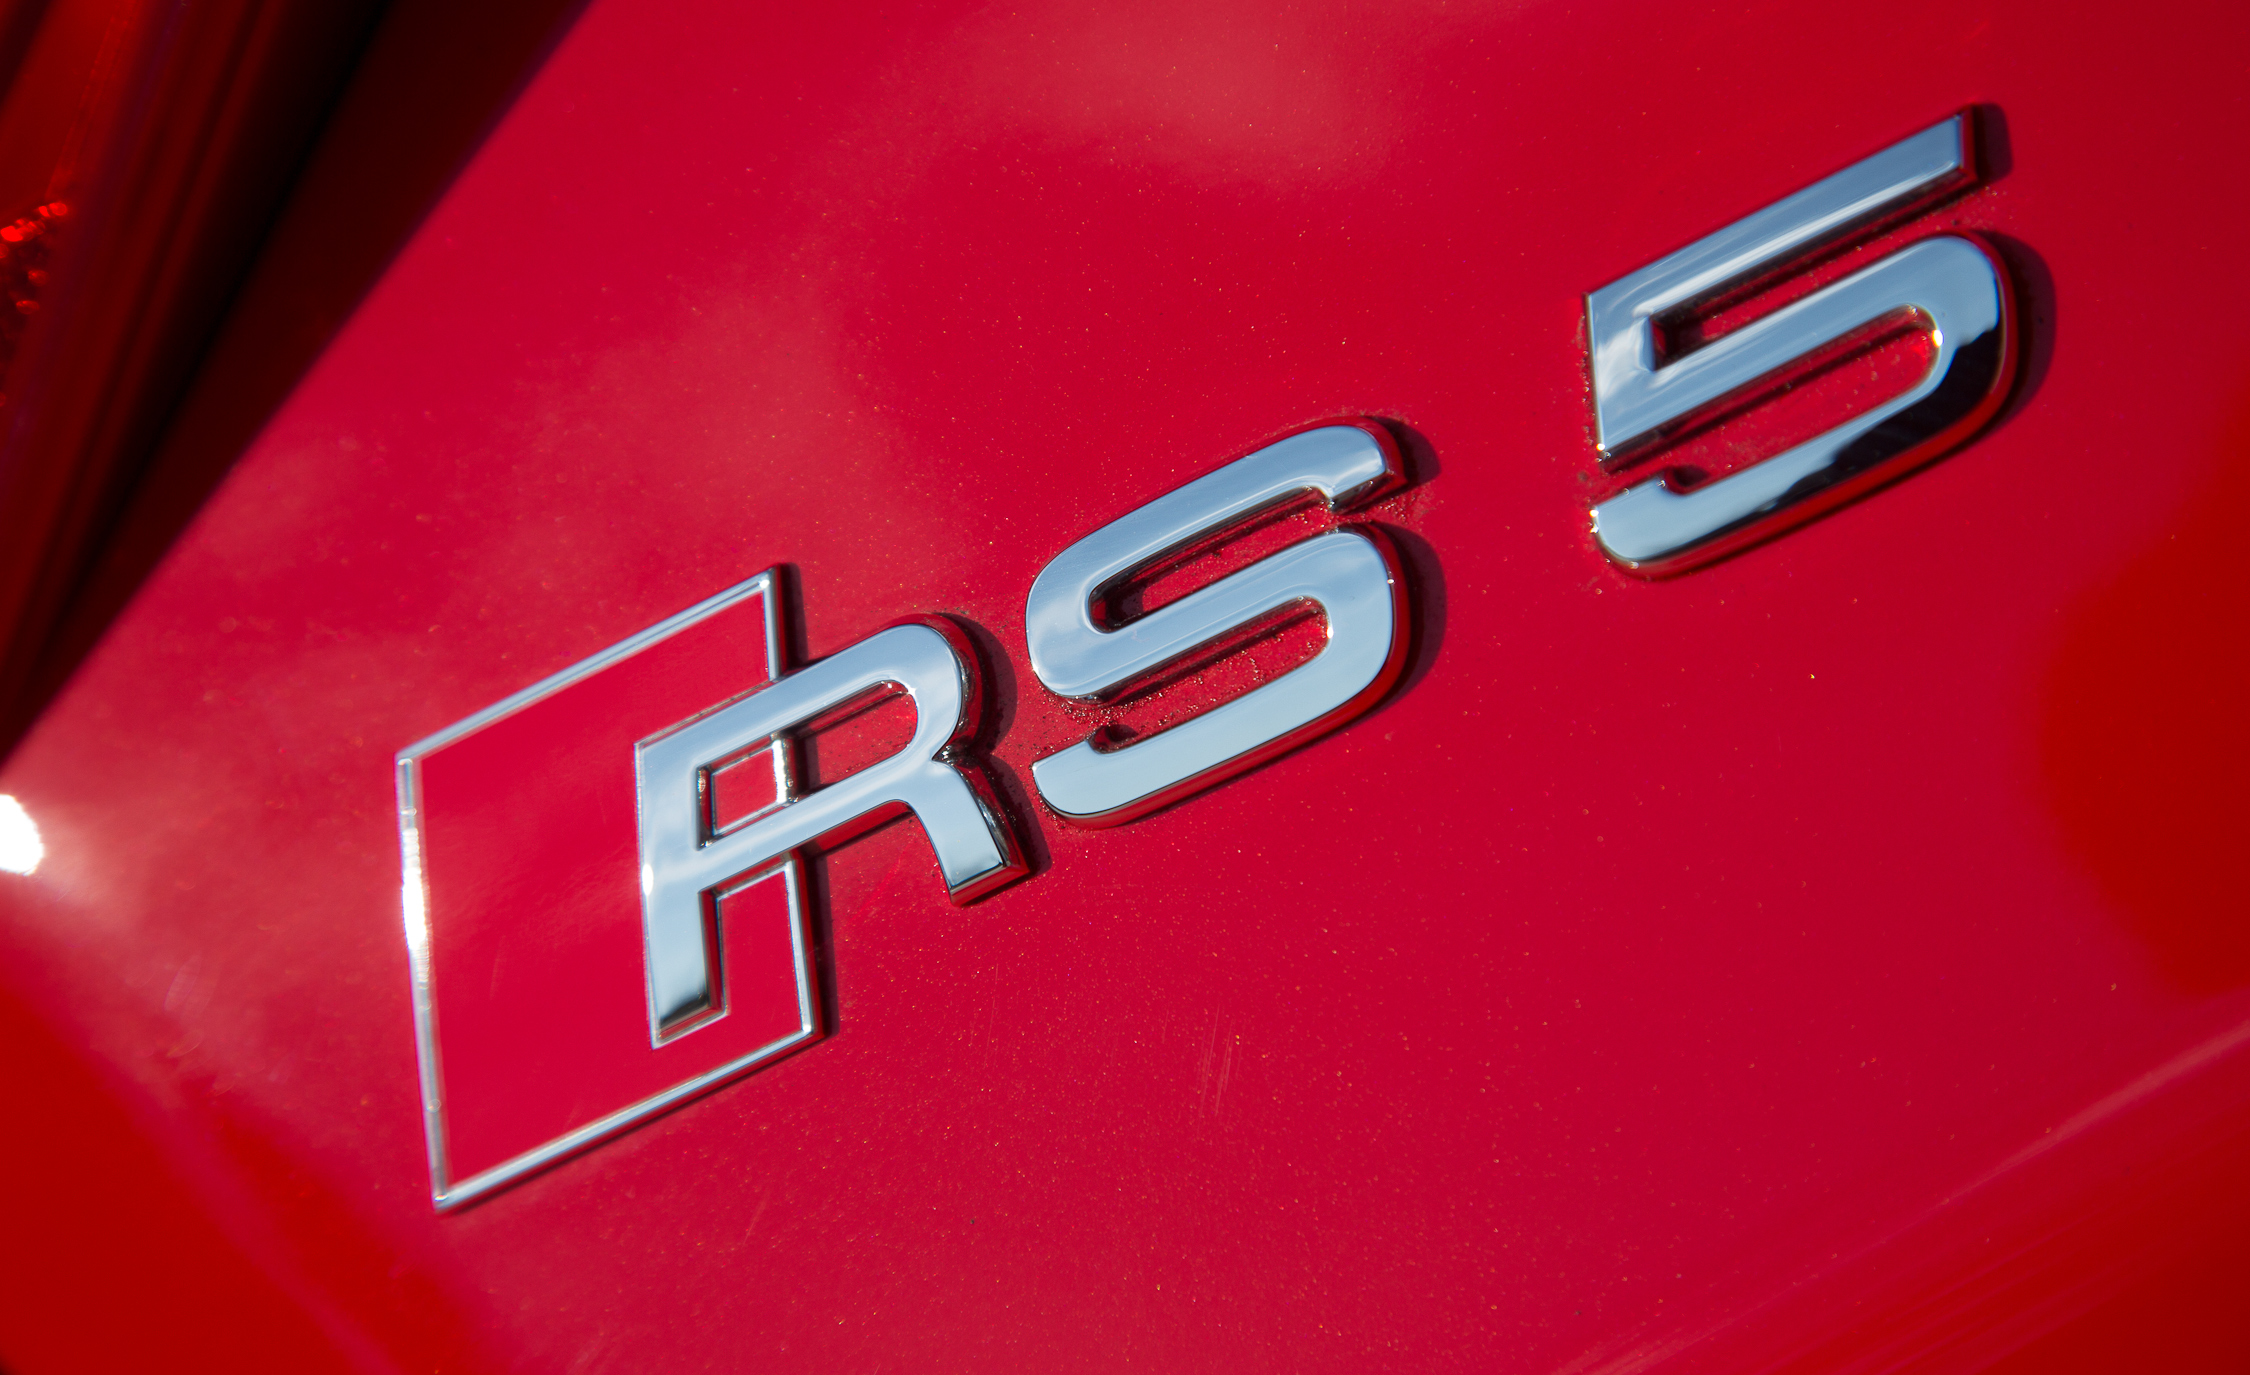 2013 Audi RS 5 Exterior View Rear Badge (View 10 of 41)